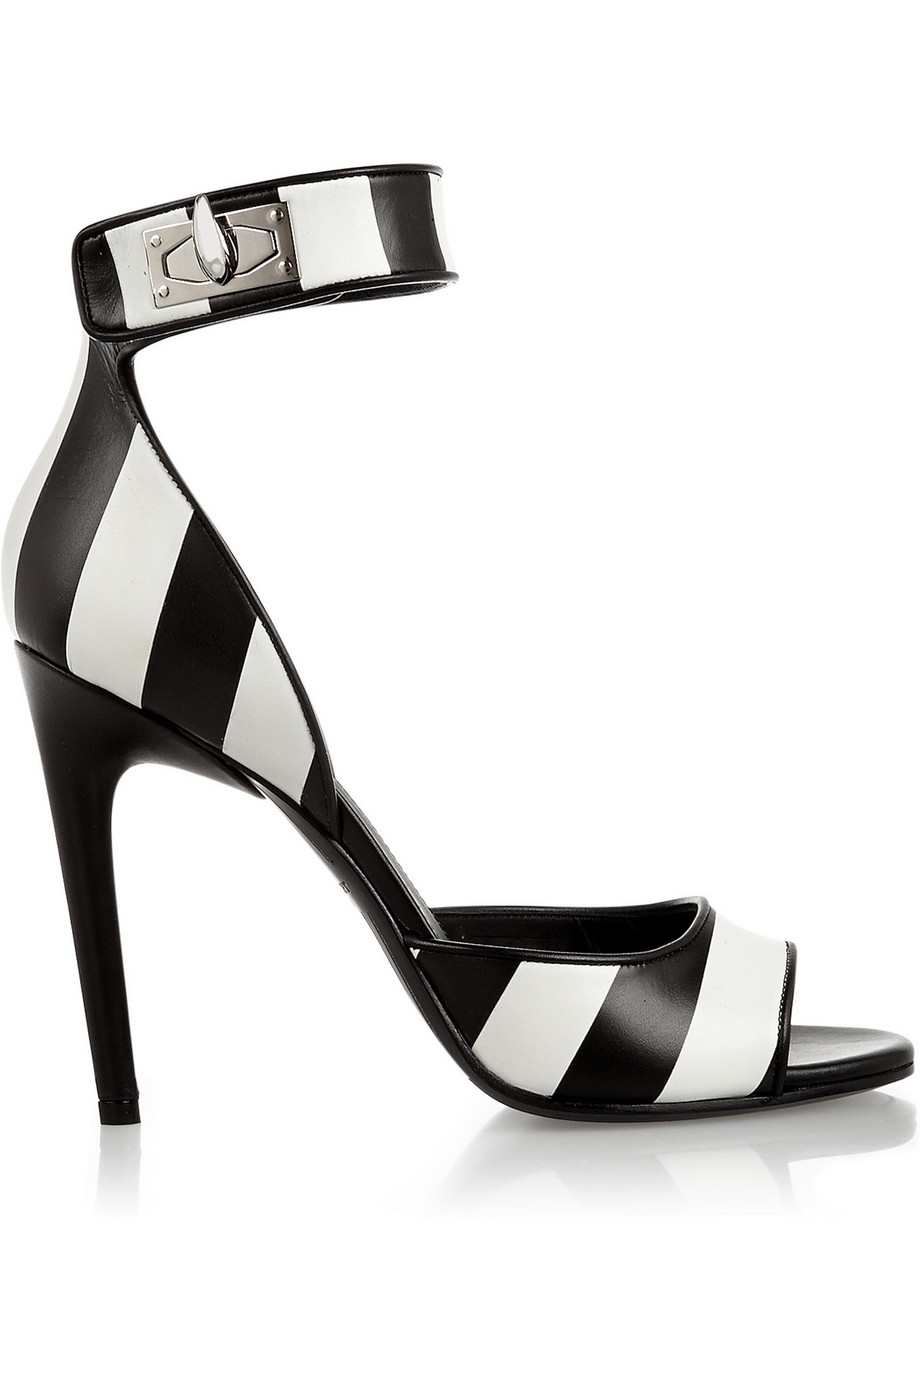 Givenchy Shark Lock Sandals in Striped Leather, Black, Women's US Size: 6, Size: 36.5